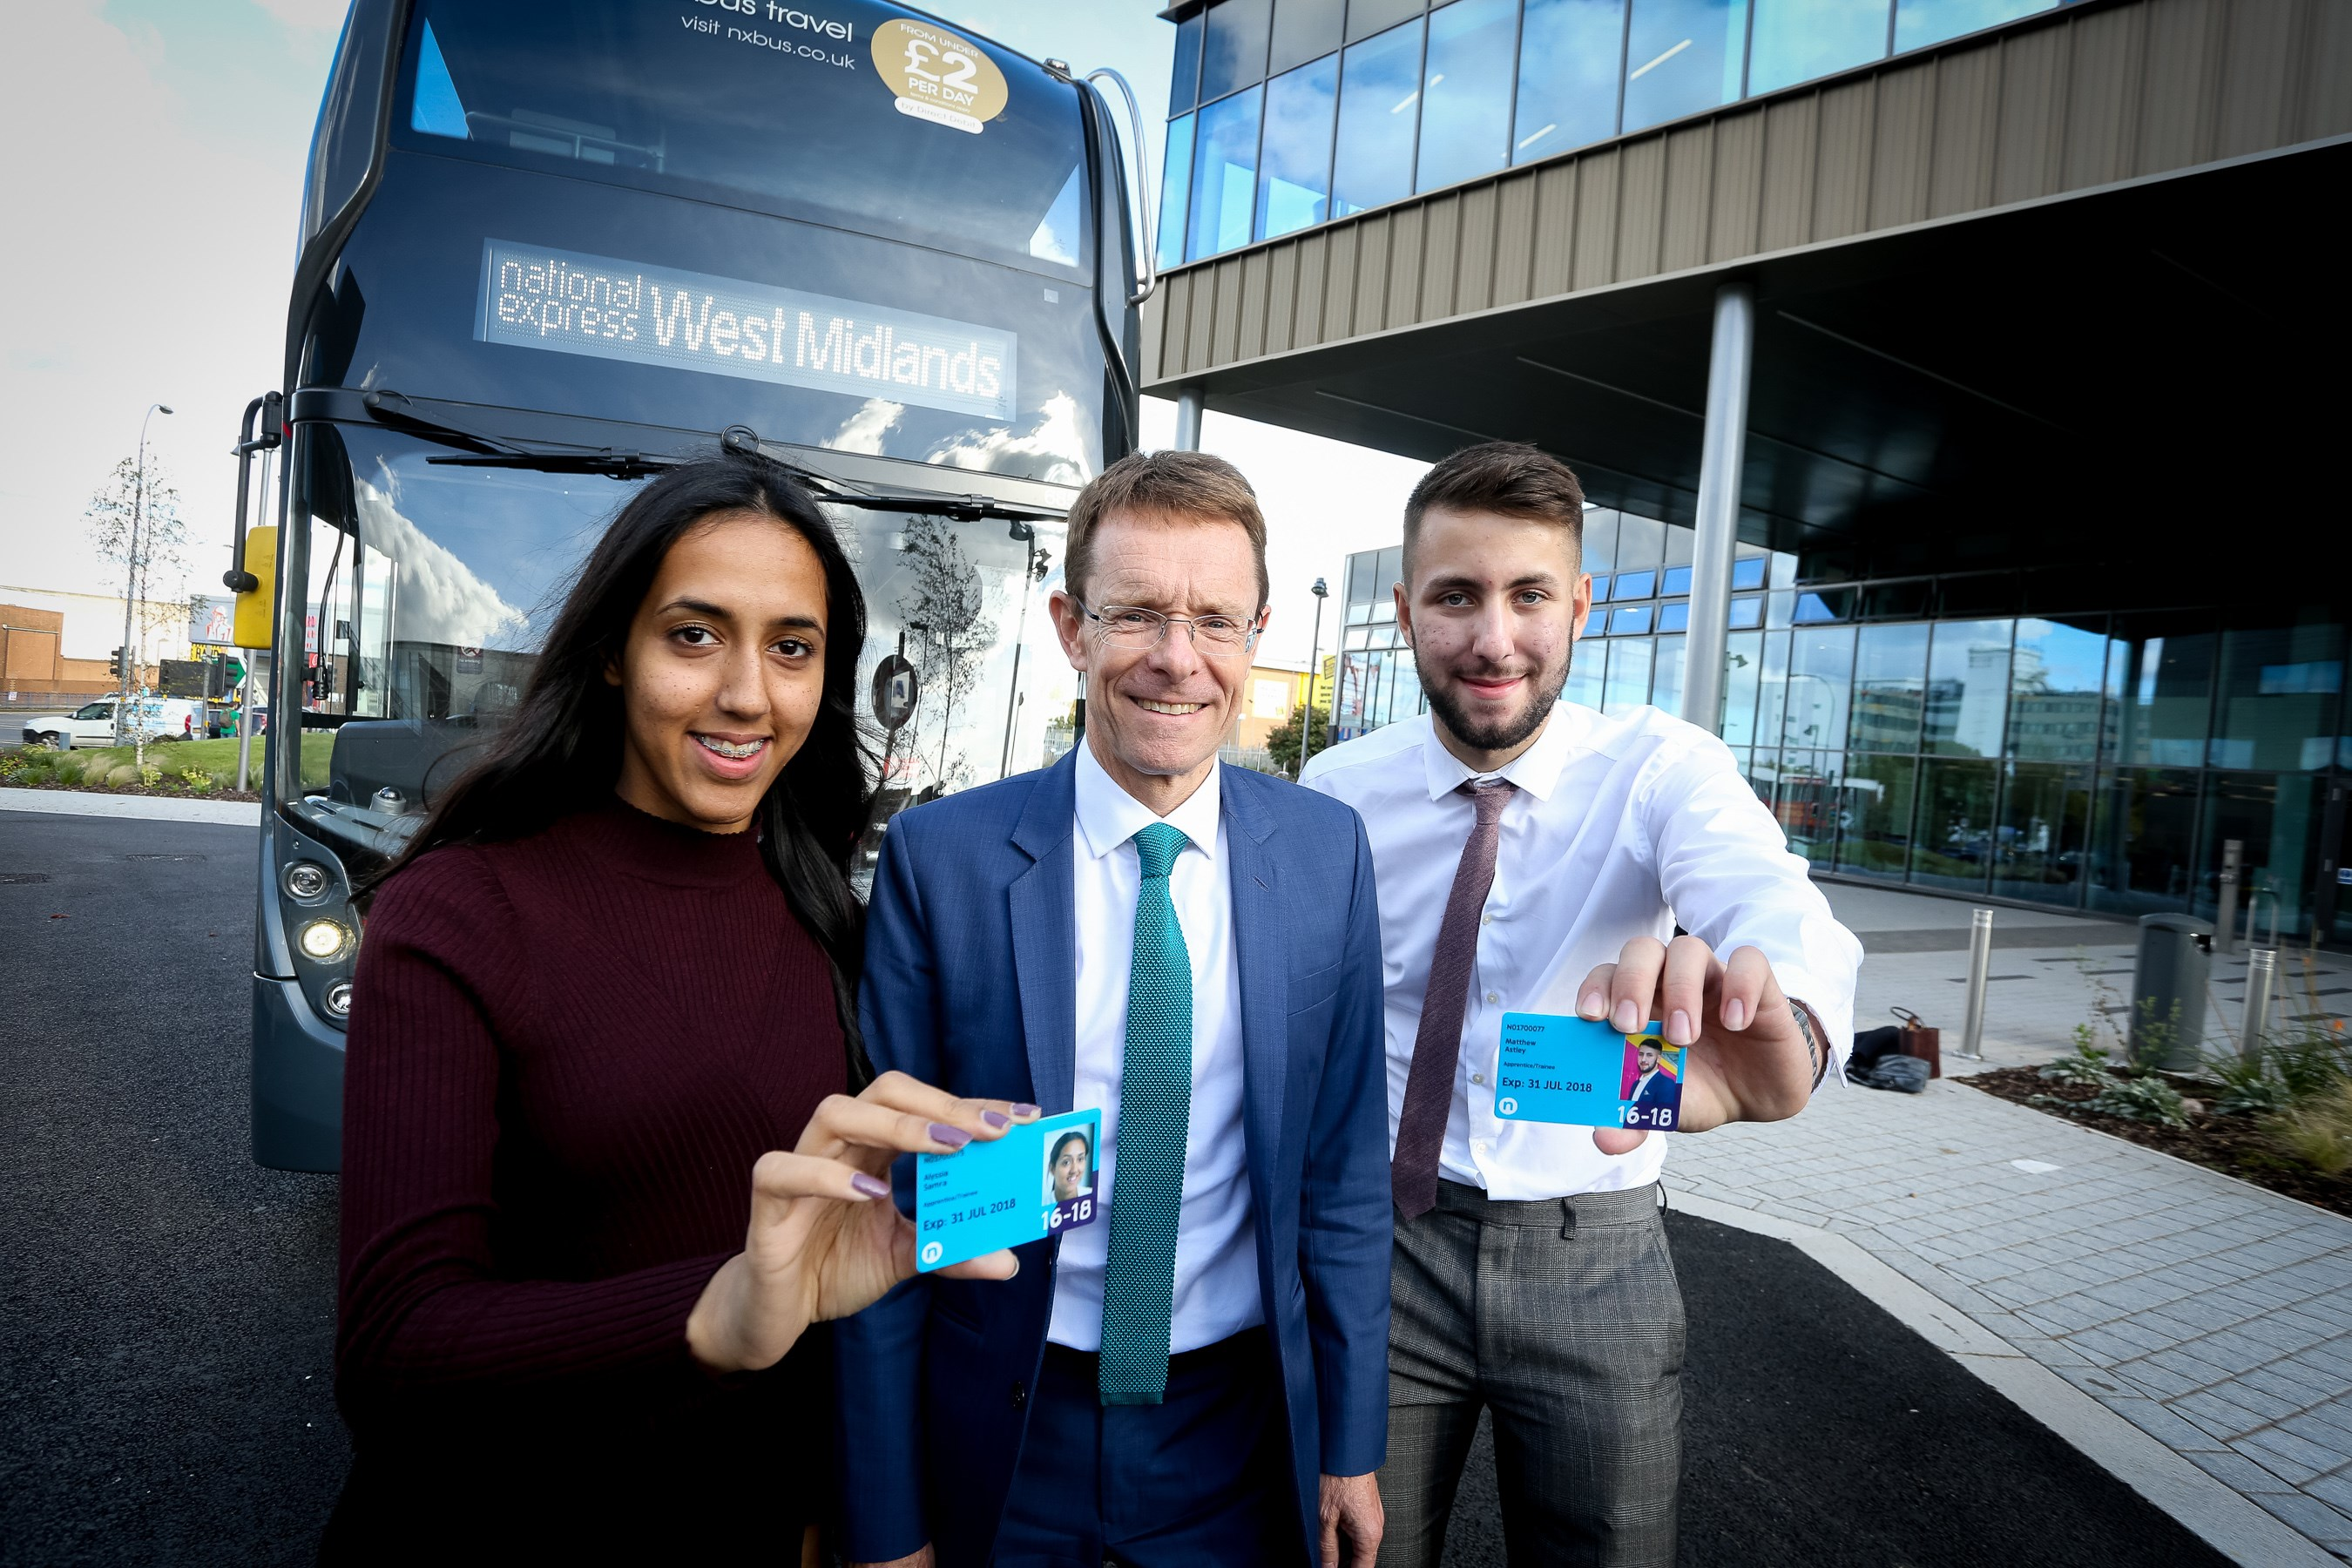 Fare's fair – Mayor of the West Midlands launches half-price travel scheme for young people